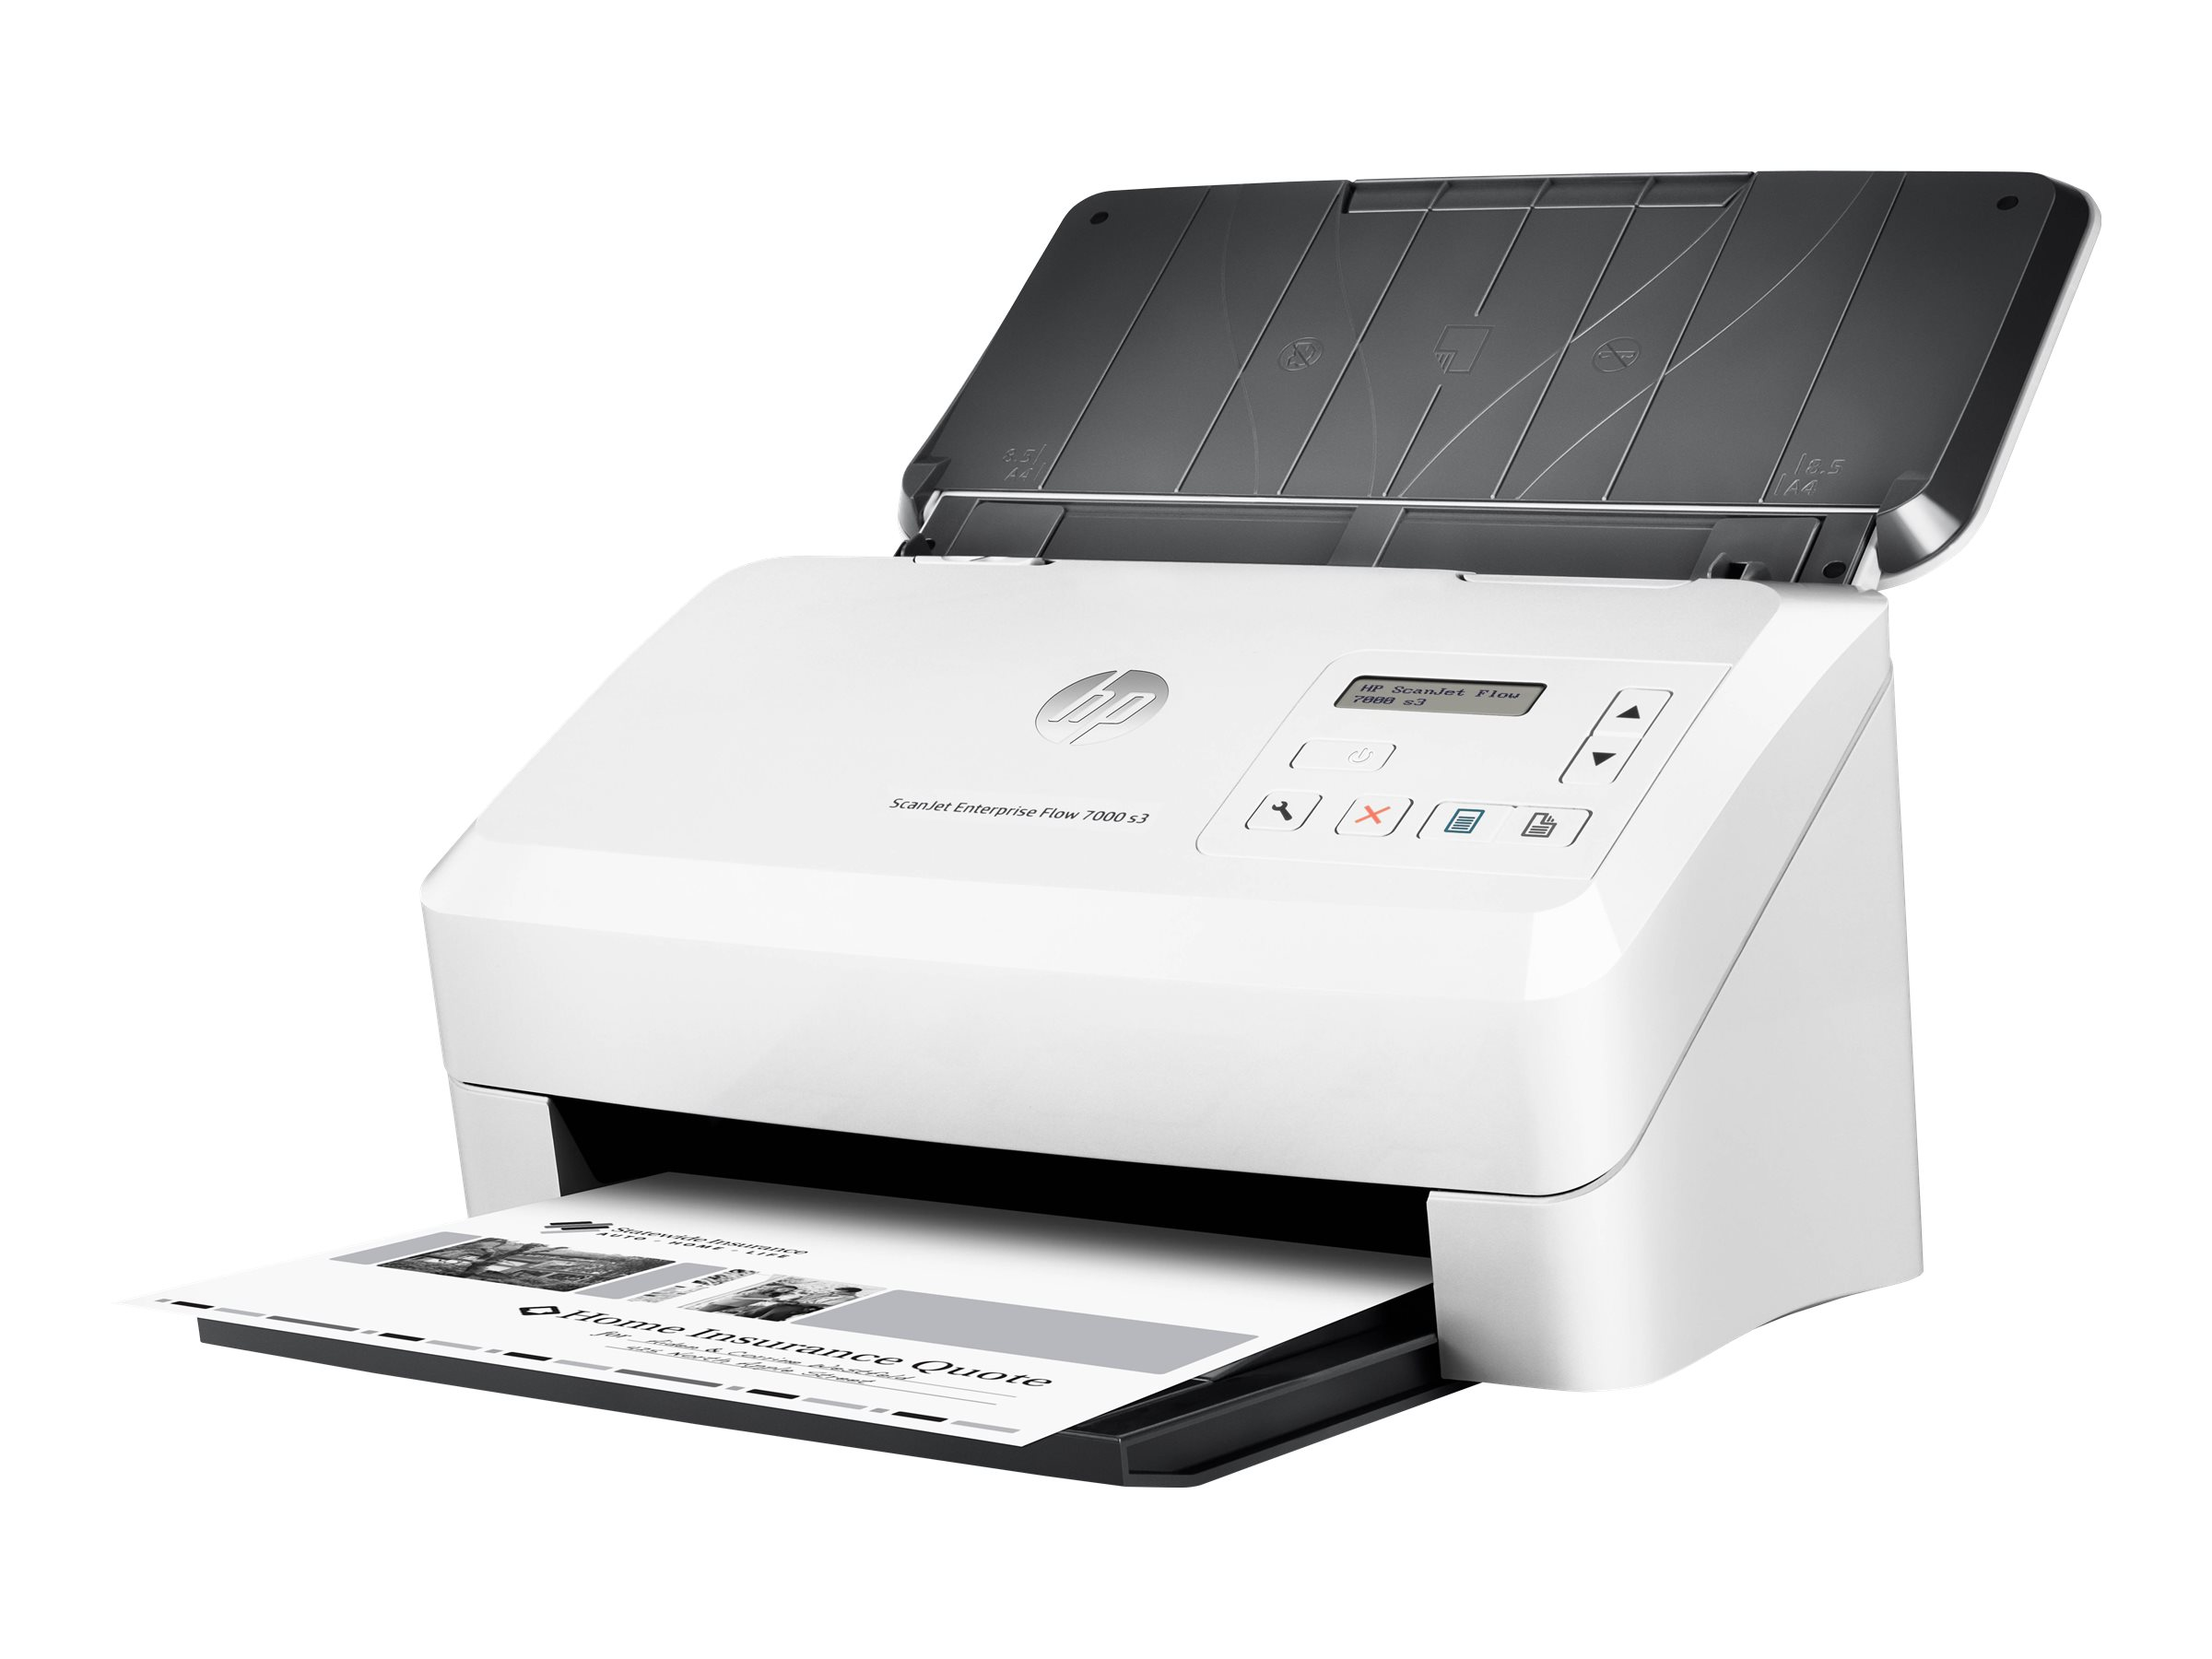 HP ScanJet Enterprise Flow 7000 s3 Sheet-feed Scanner - document scanner - desktop - USB 3.0, USB 2.0